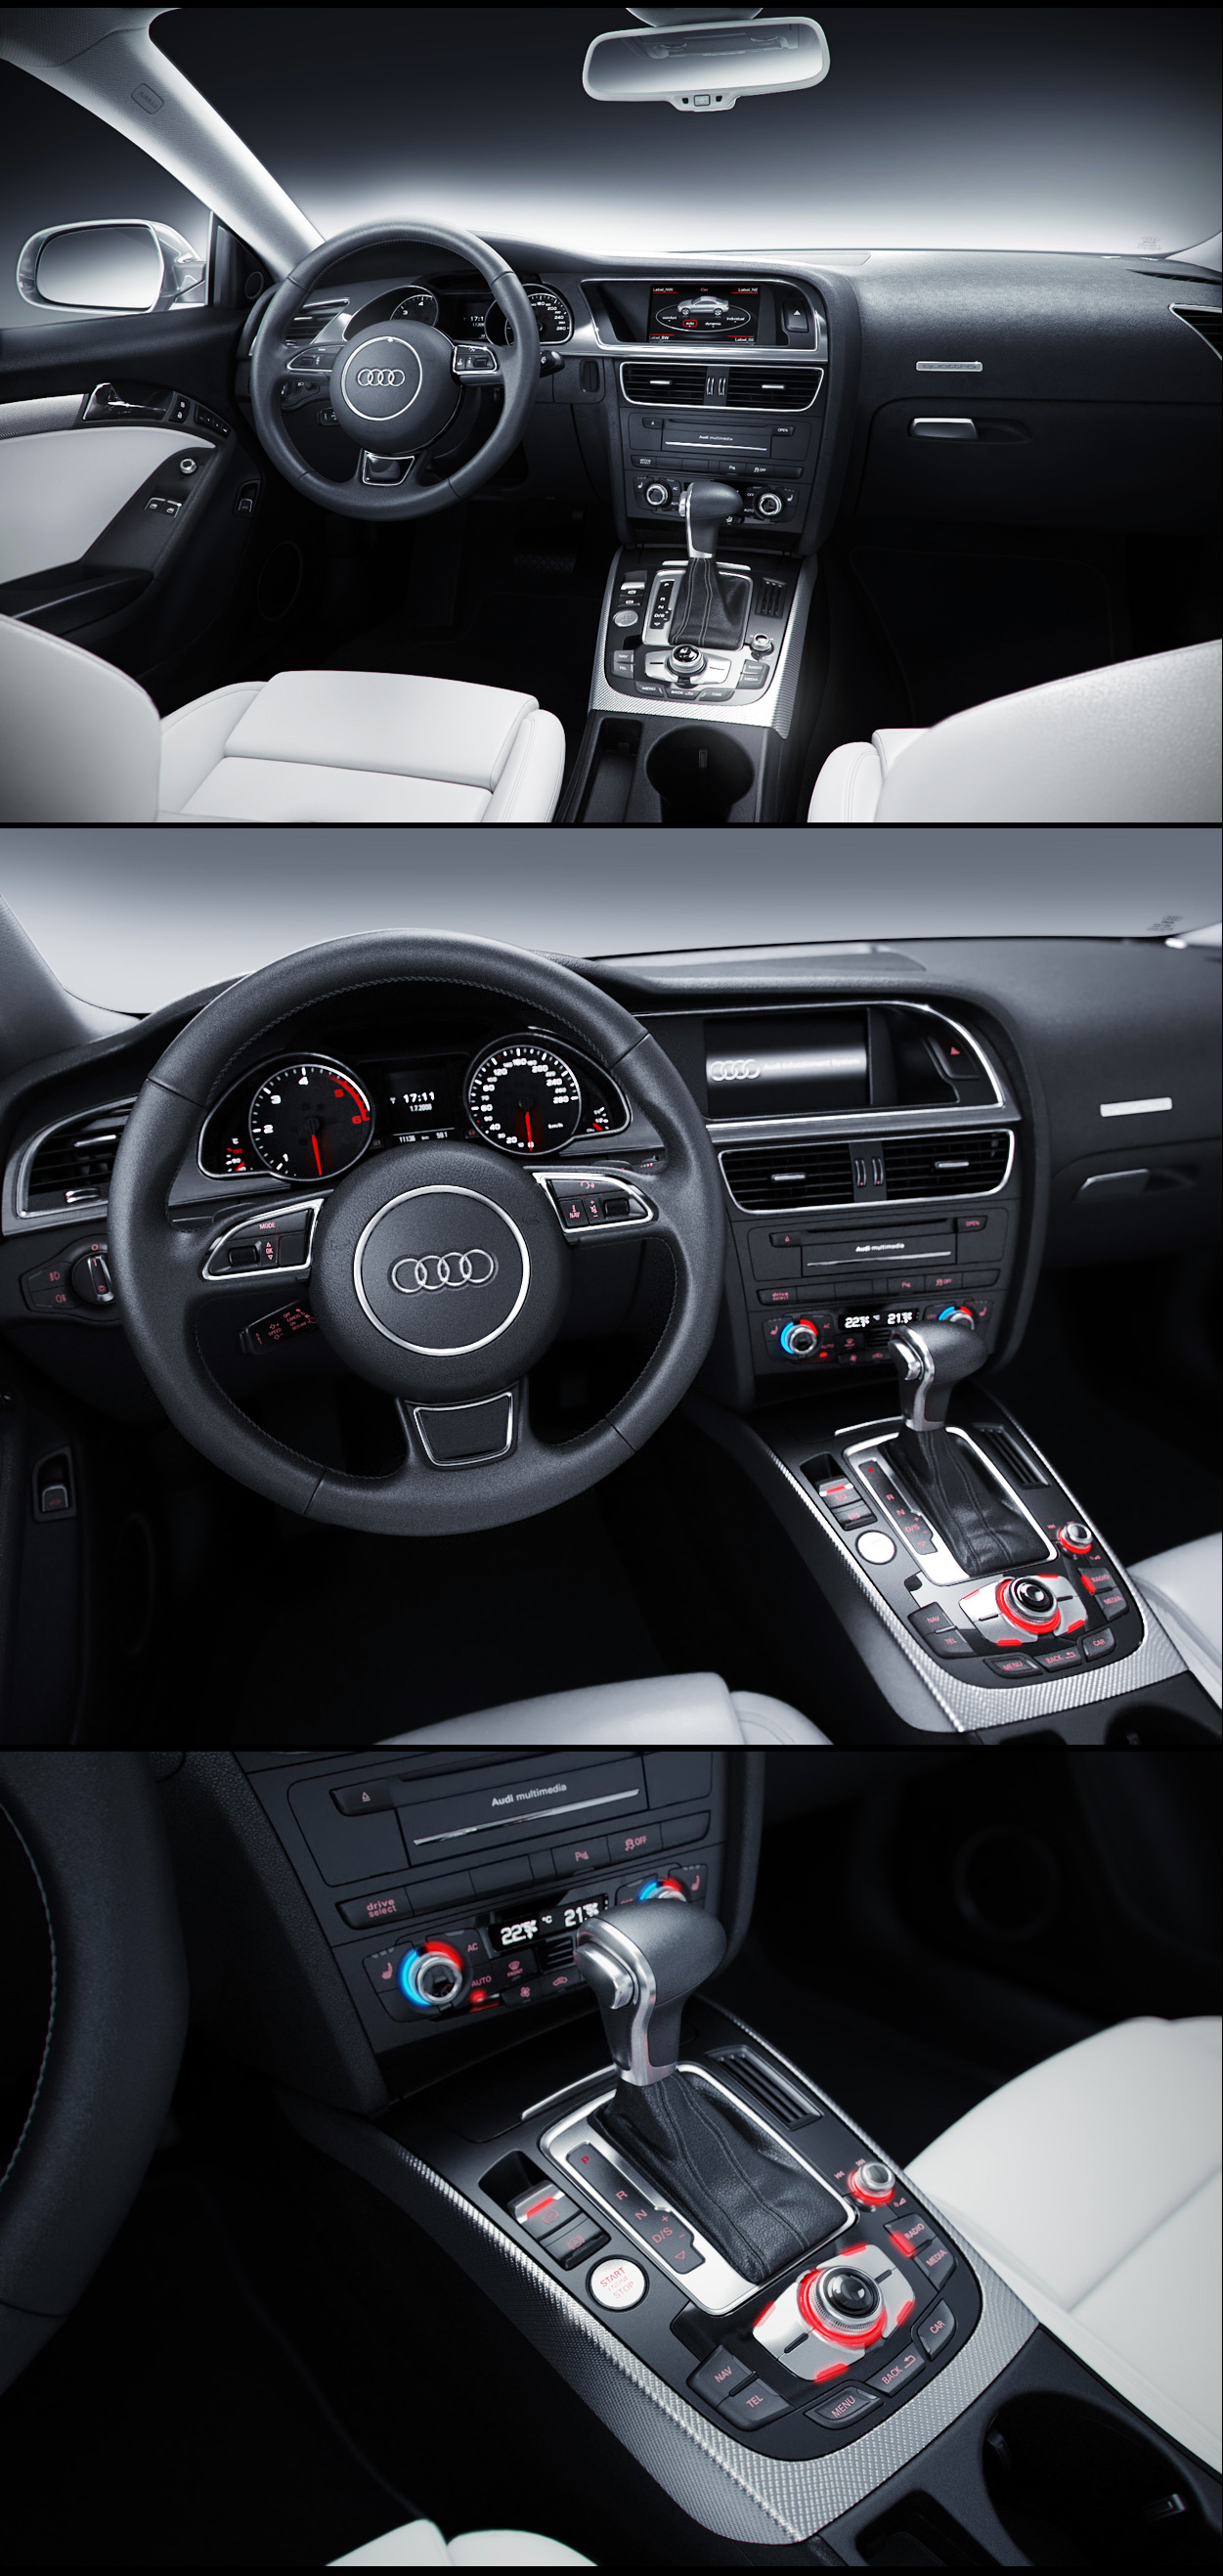 Audi A5 2011 Interior by MUCK-ONE